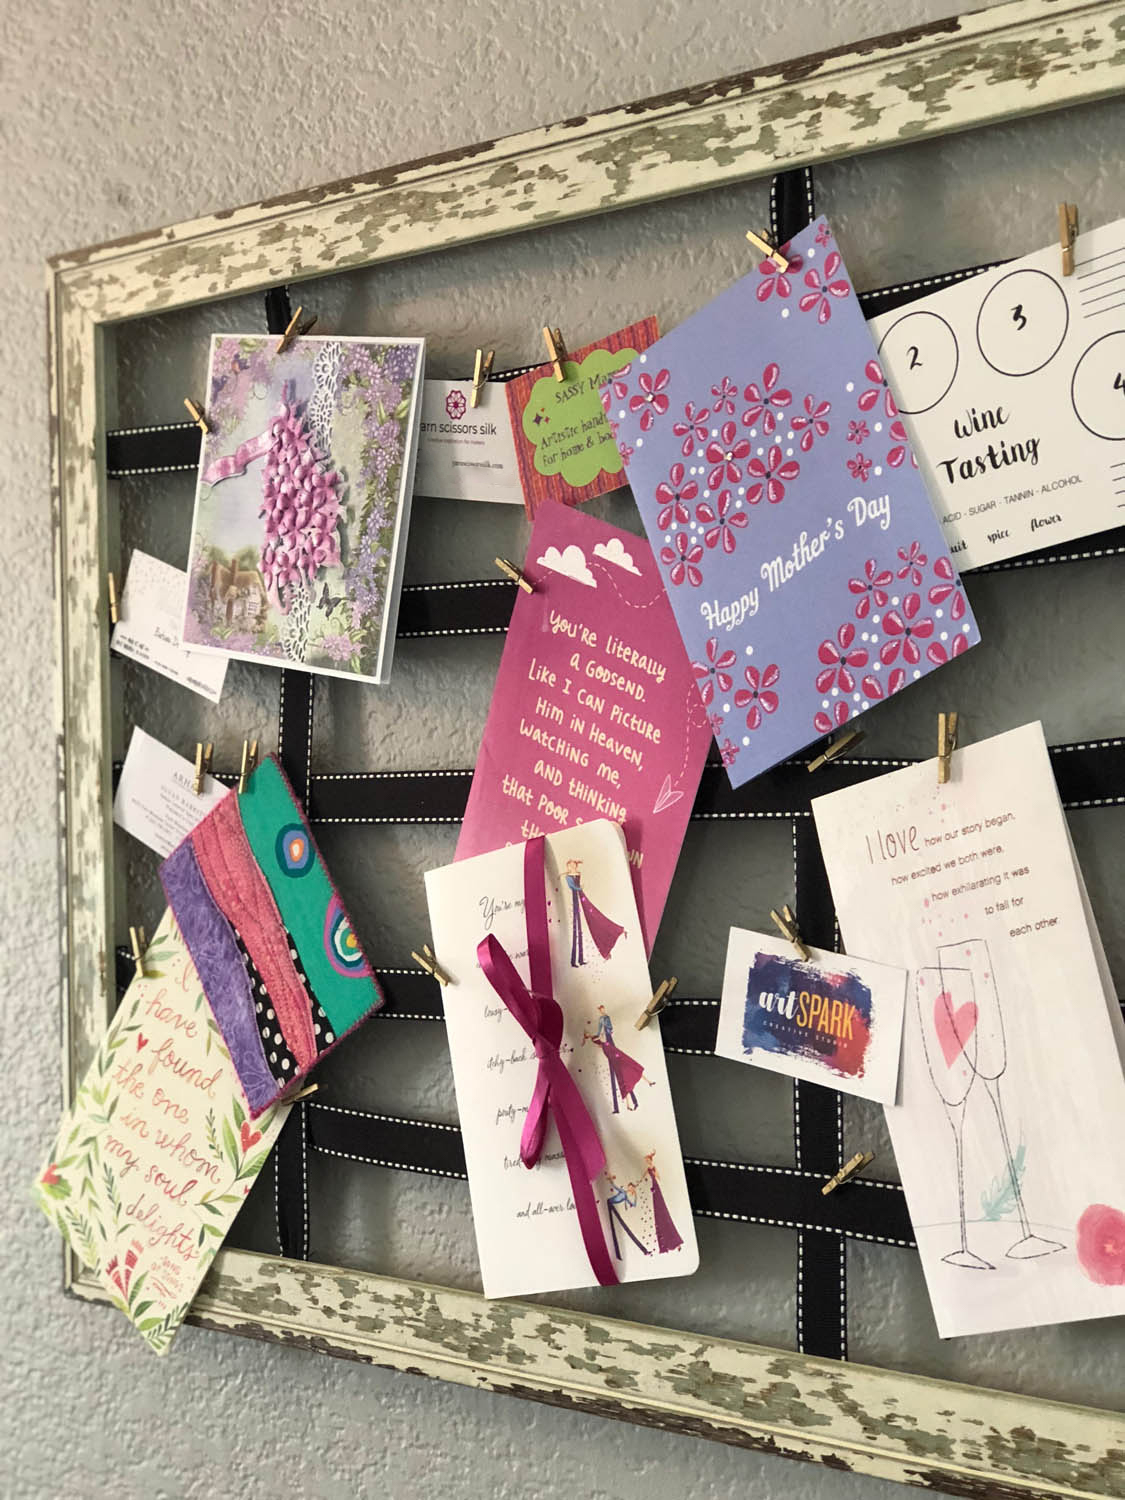 7a-display-of-cards-clipped-to-ribbon-and-hanging-on-wall-v2.jpg